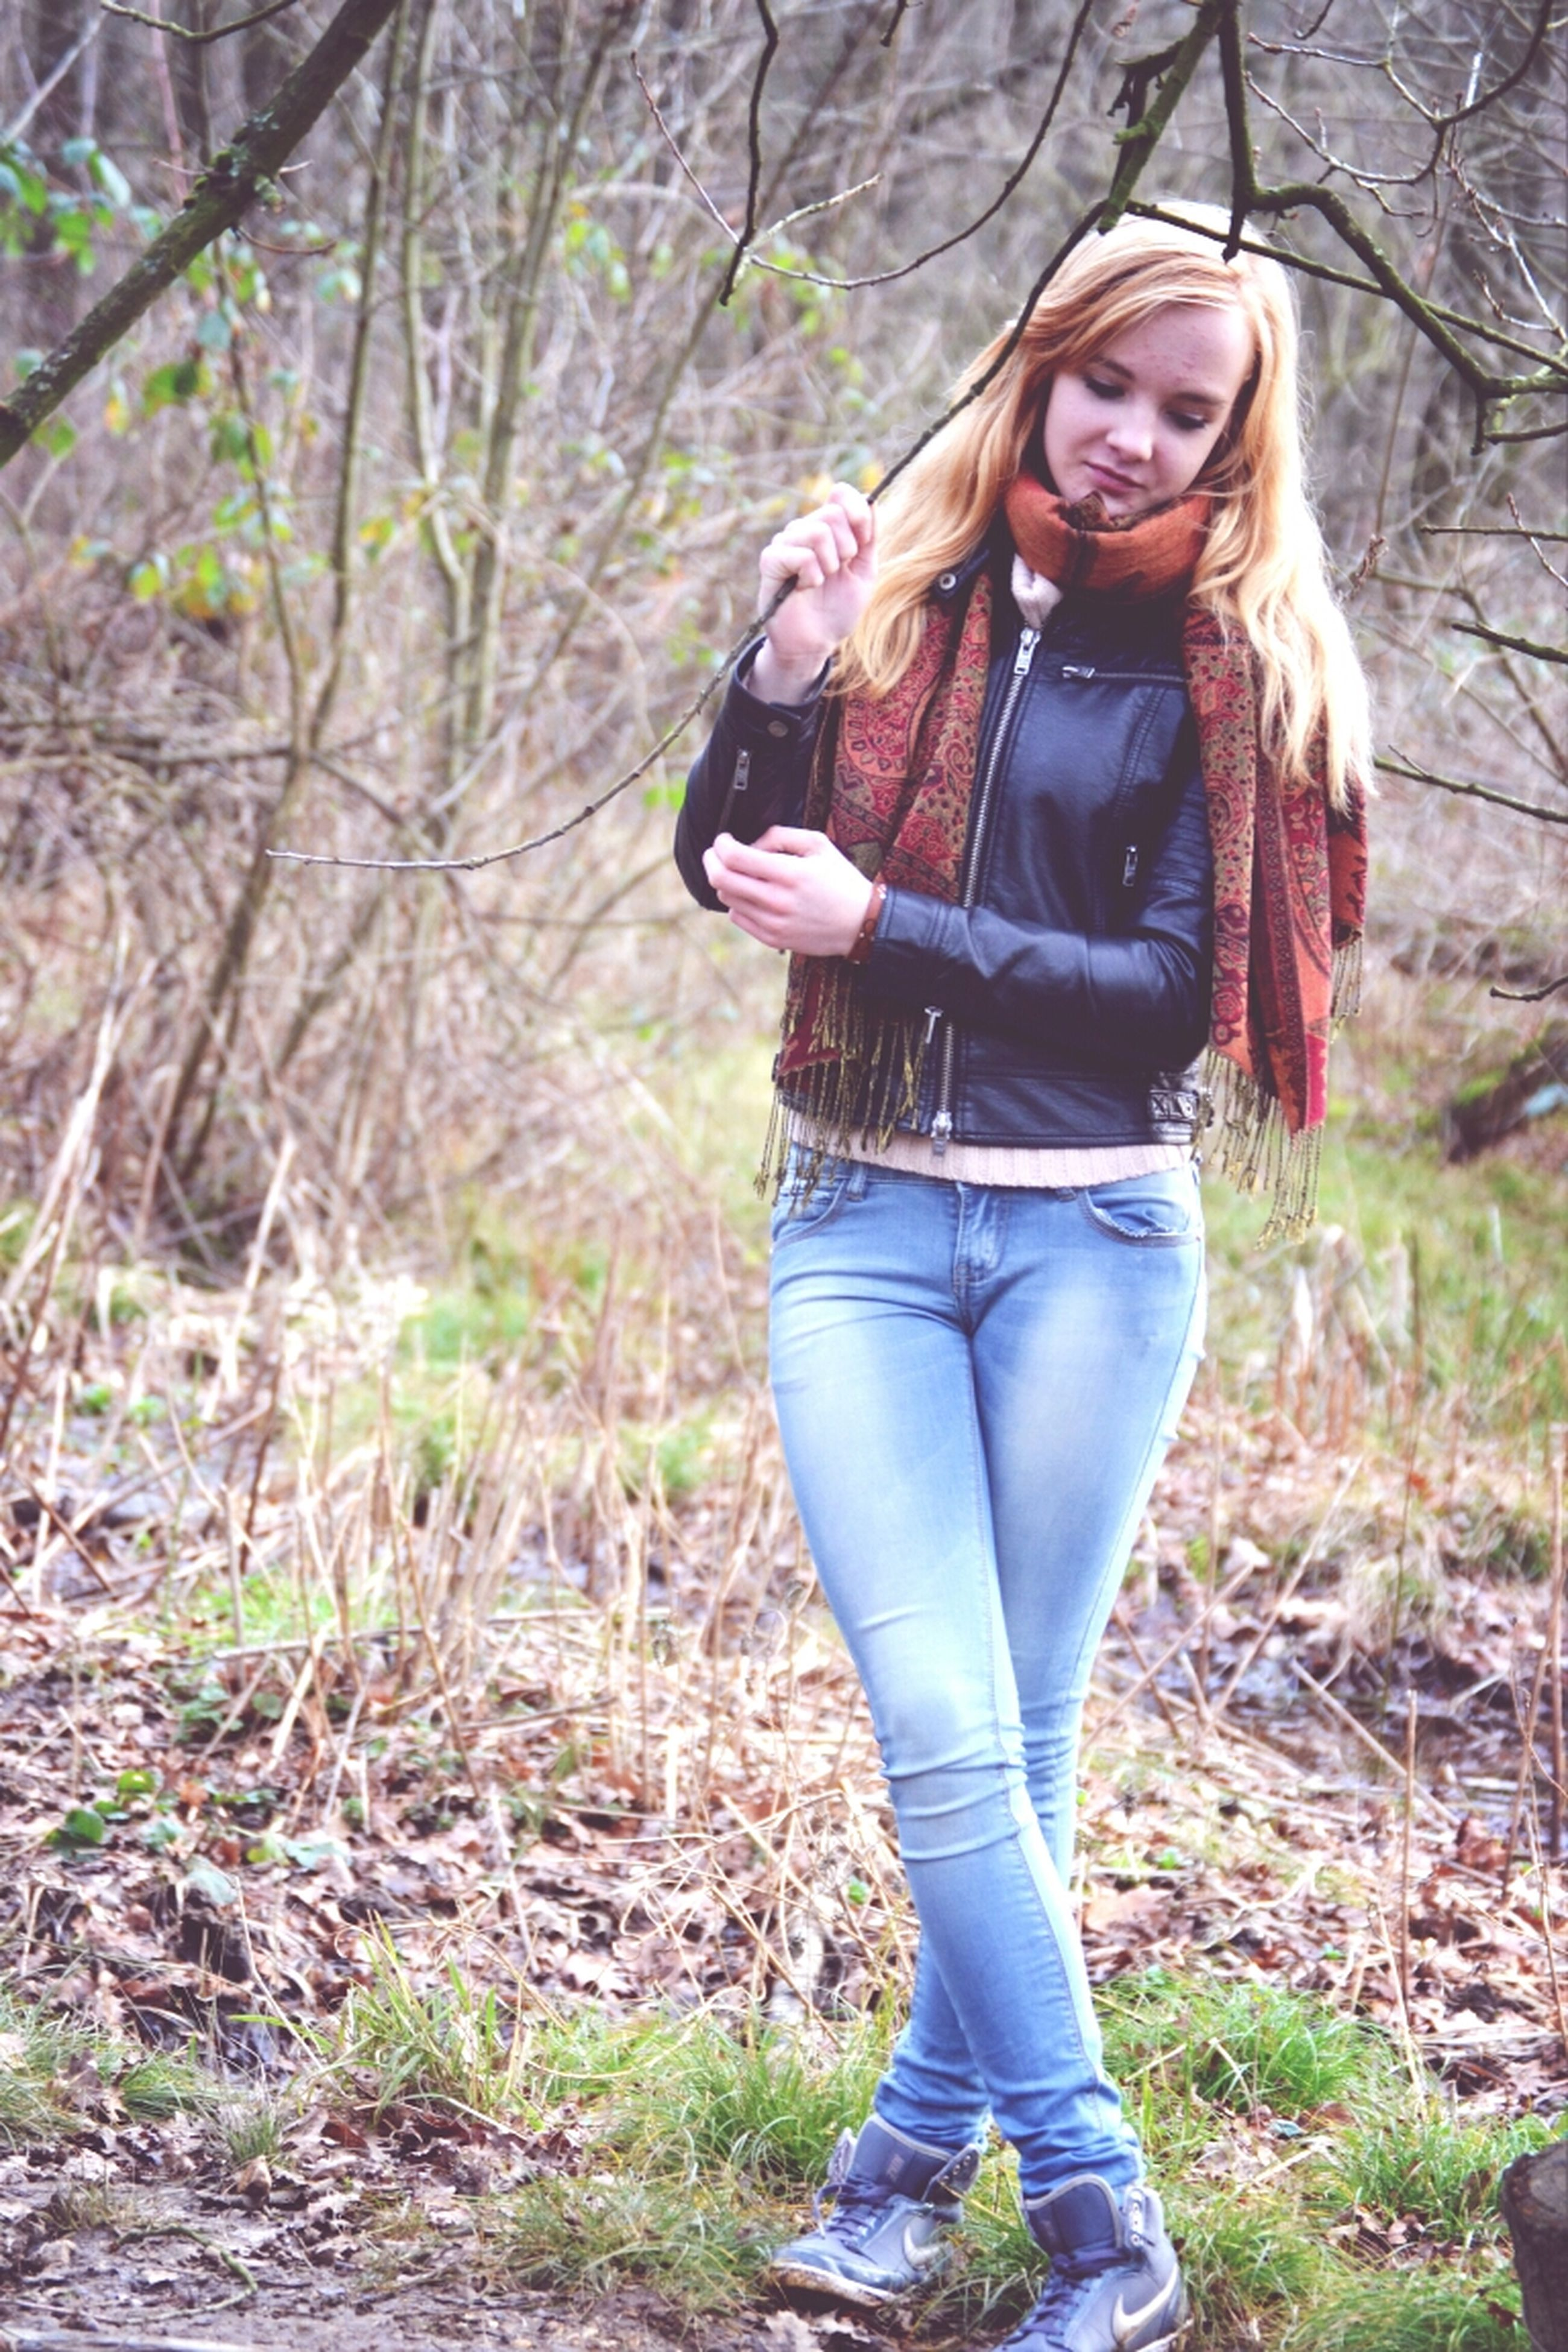 young adult, lifestyles, person, casual clothing, young women, standing, leisure activity, portrait, front view, three quarter length, looking at camera, long hair, tree, full length, sunglasses, jacket